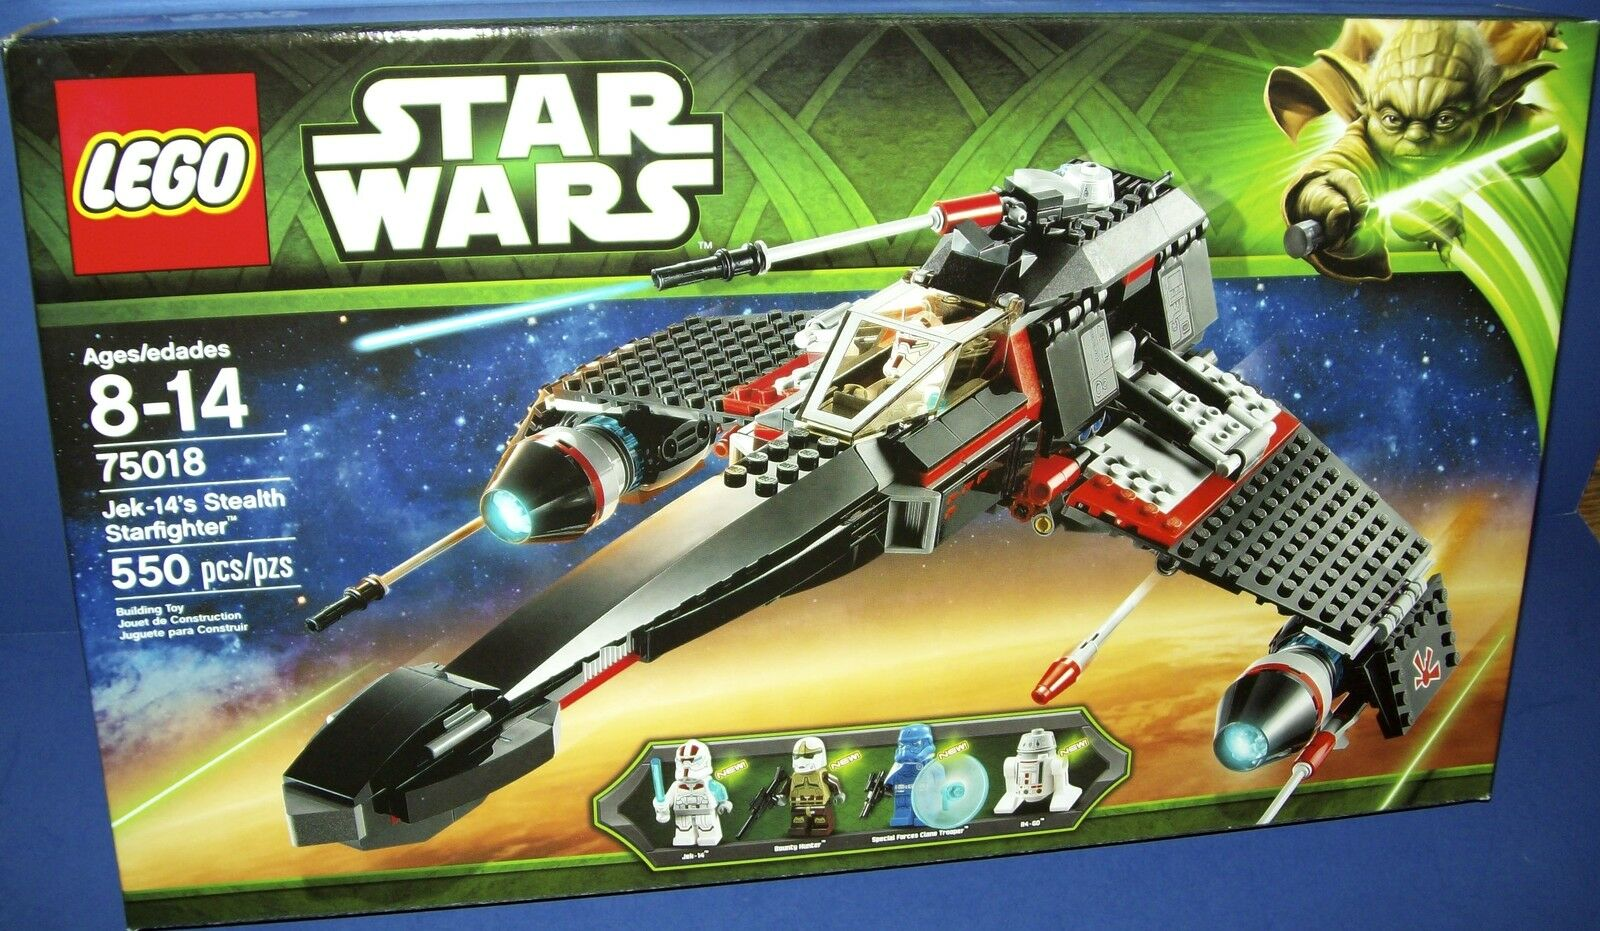 LEGO 75018 JEK-14's STEALTH STARFIGHTER  STAR WARS NISB new HTF retiROT